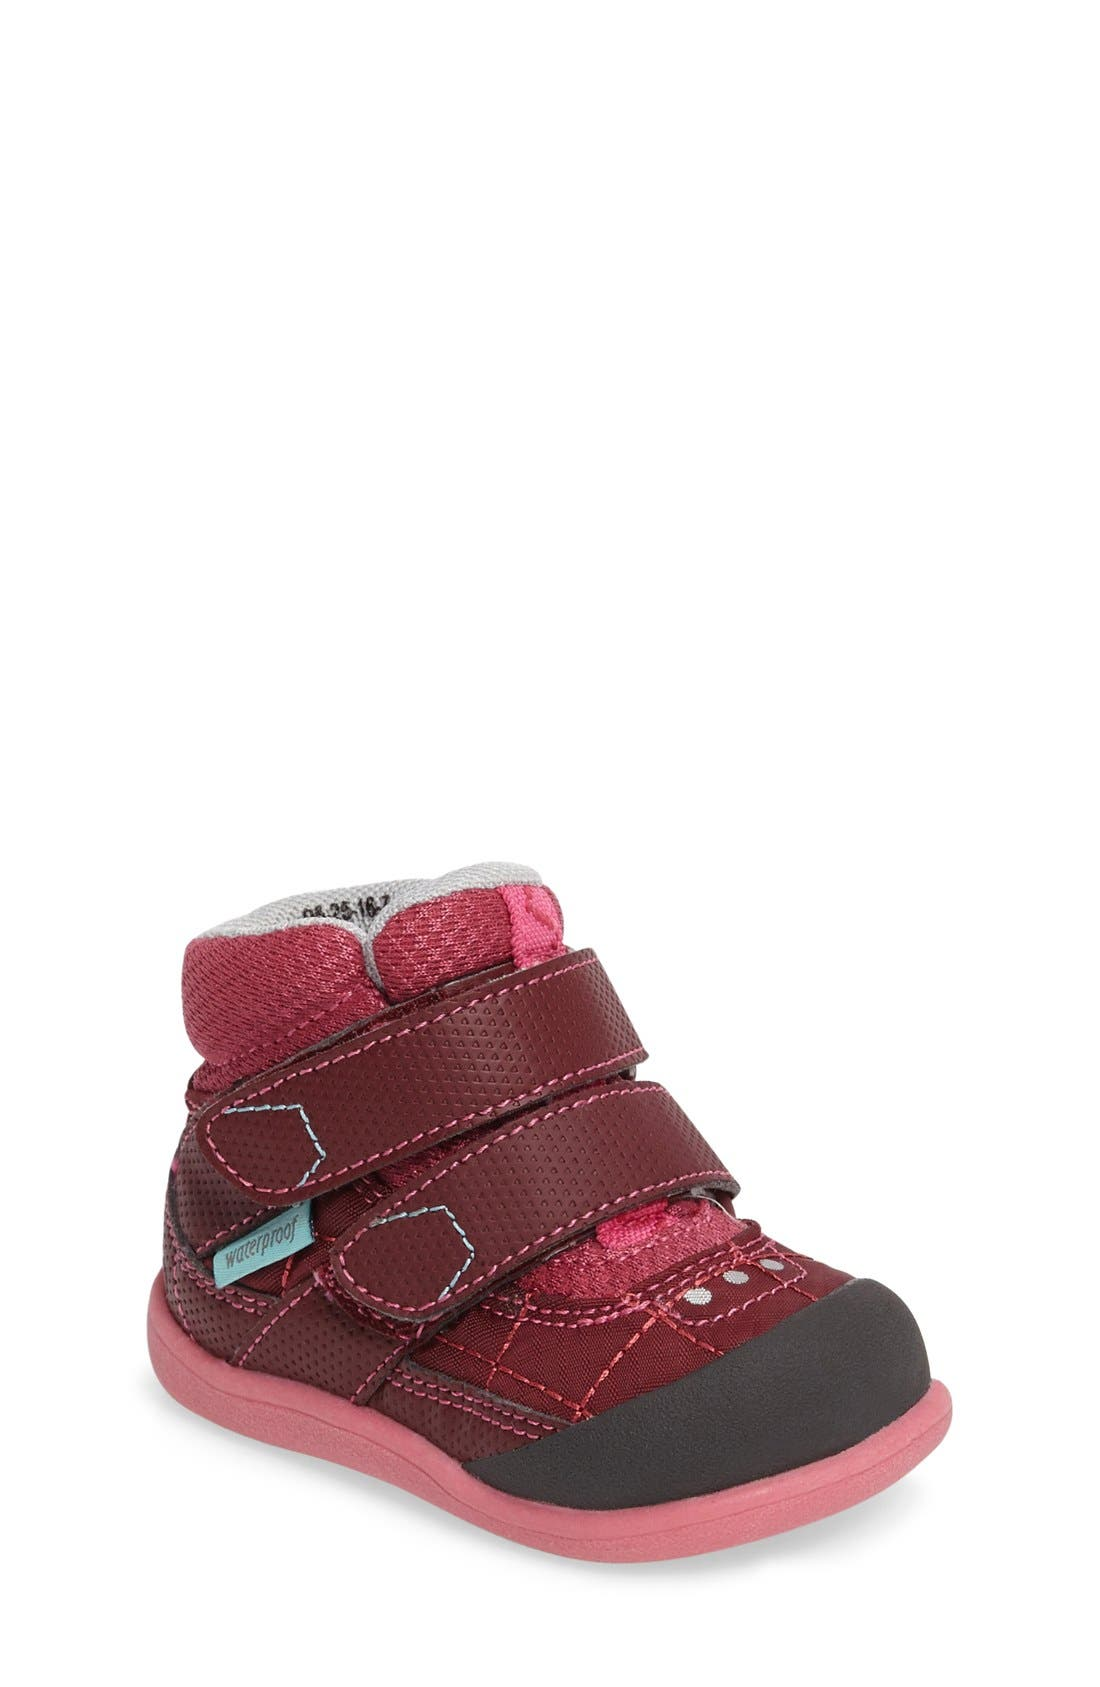 Atlas Waterproof Boot,                             Main thumbnail 1, color,                             Burgundy/ Berry